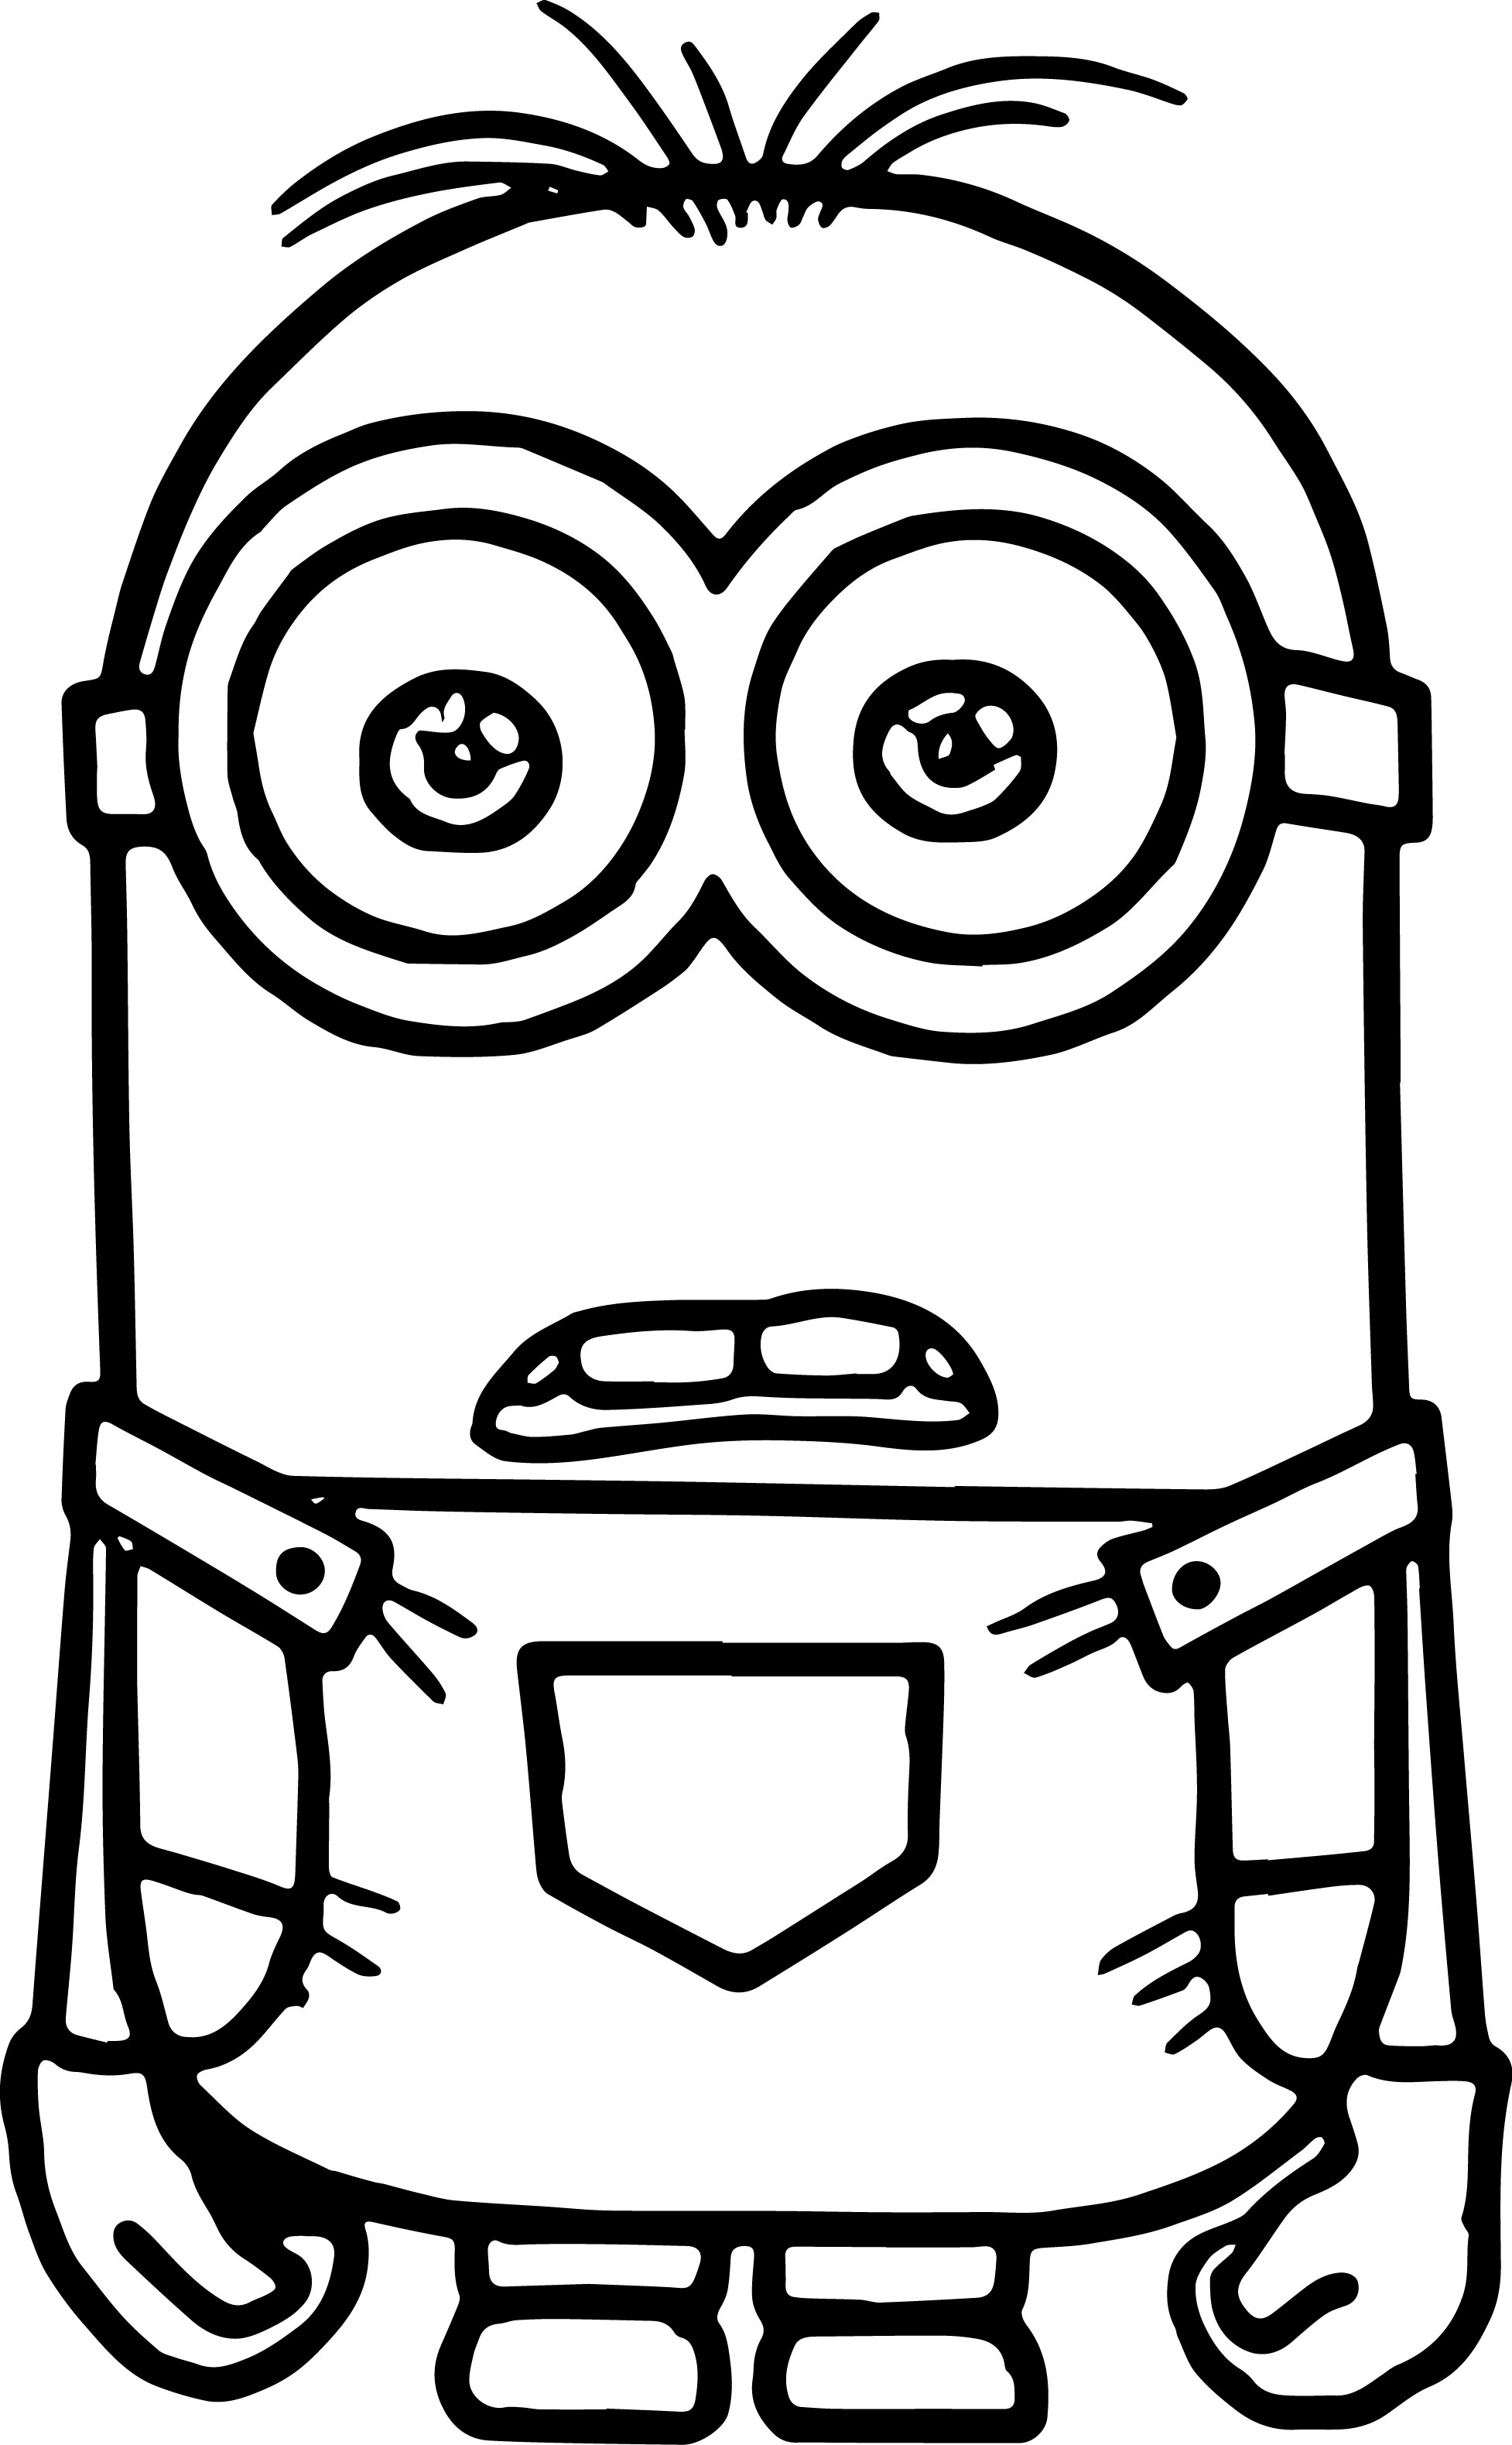 coloring minion pages print download minion coloring pages for kids to have coloring pages minion 1 1